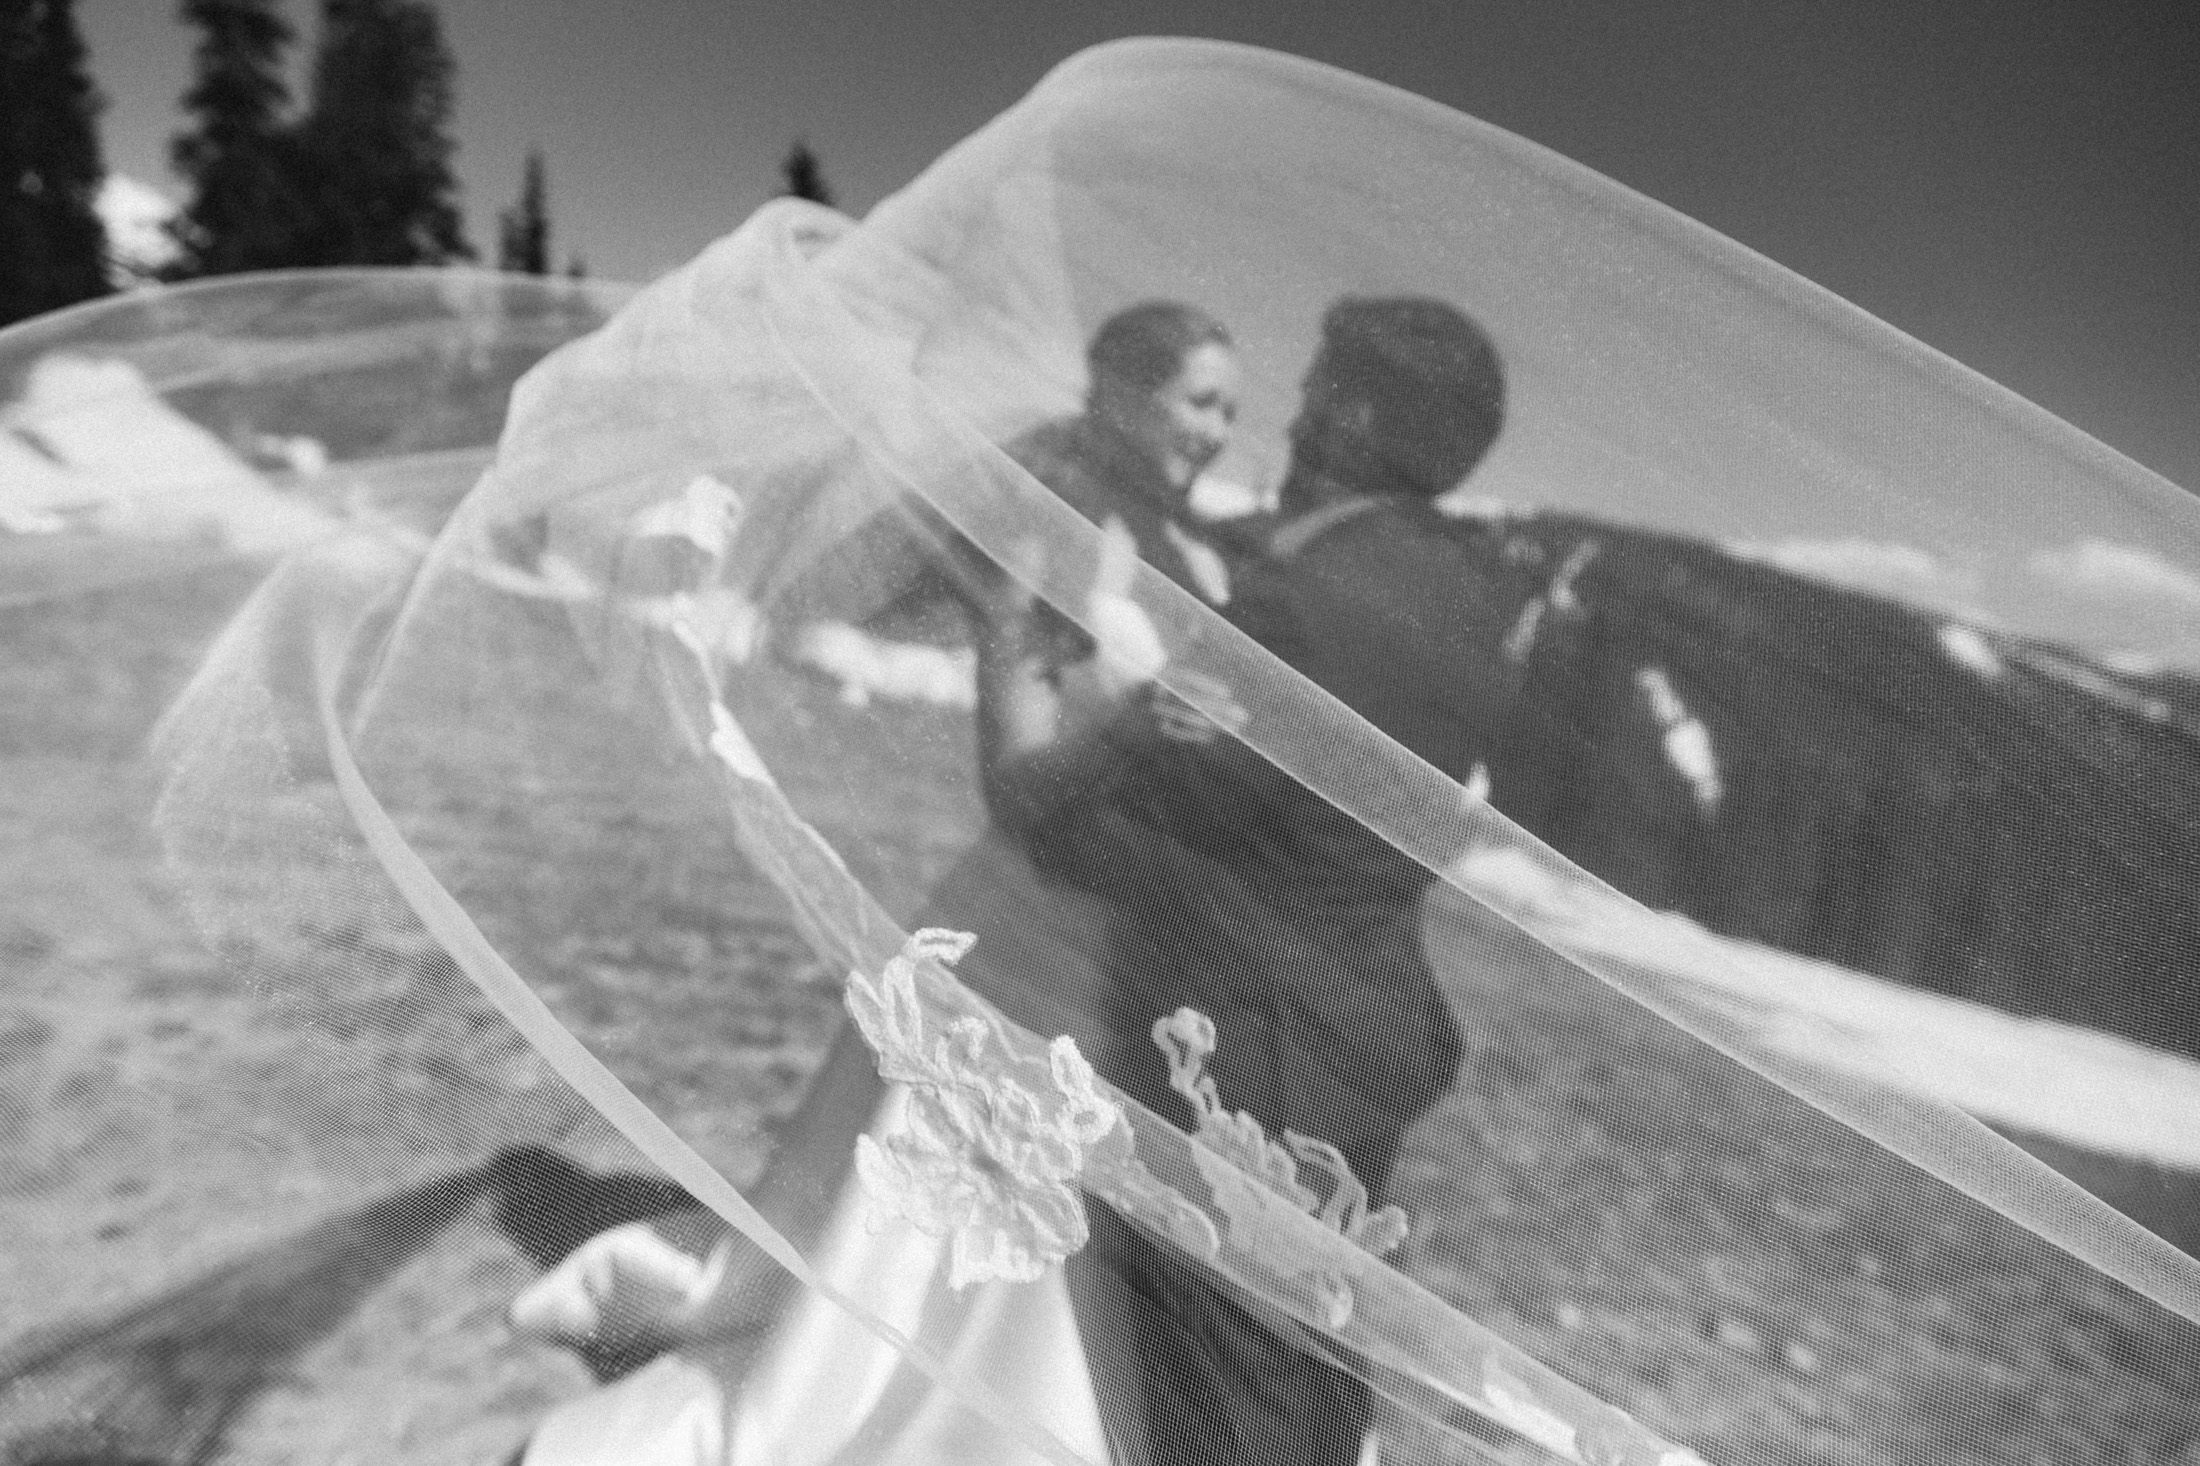 Black and white photo of bride and groom embracing with veil blowing in the wind.